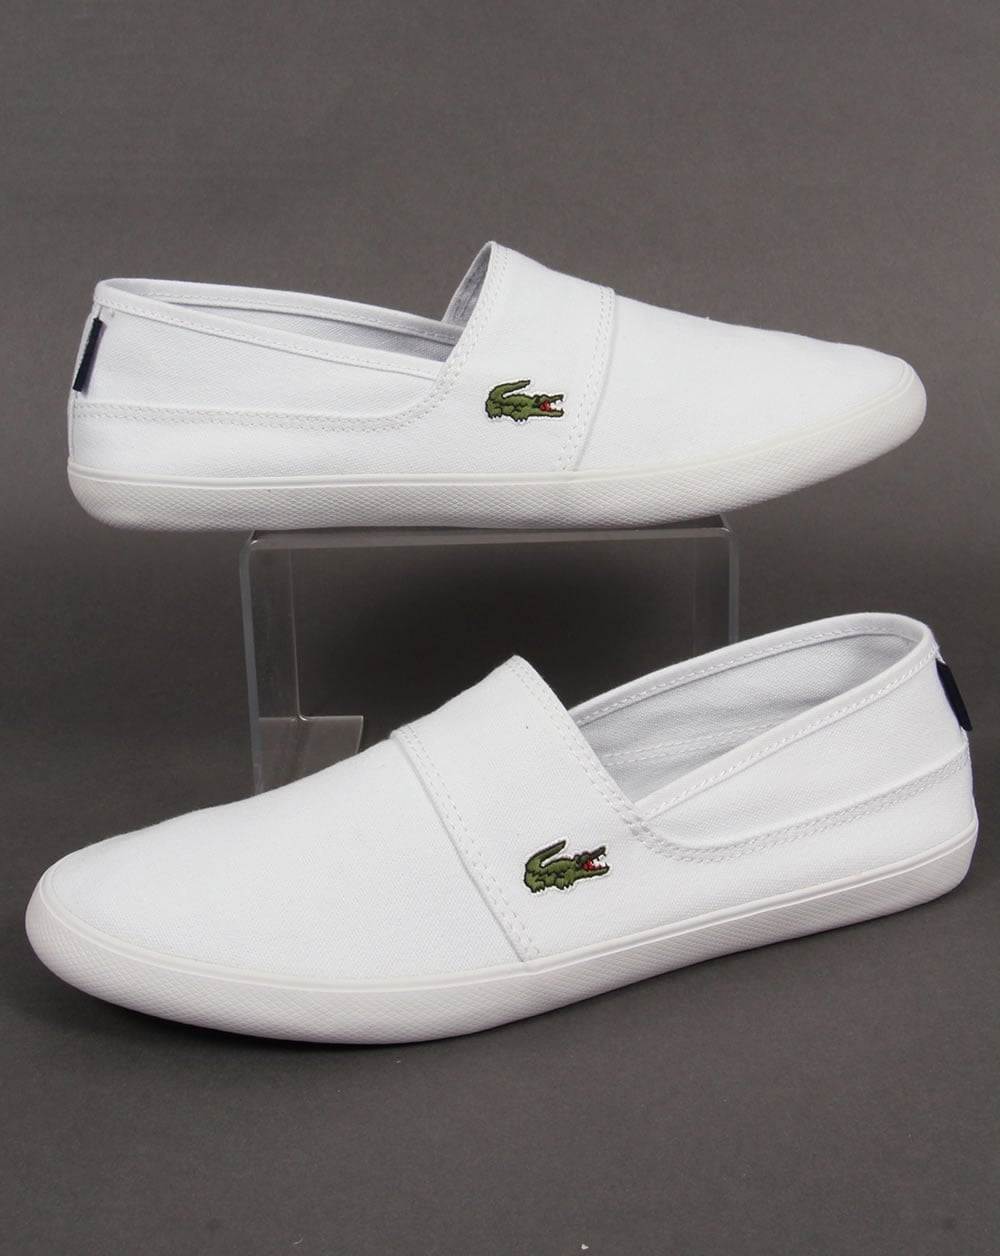 df73e4512 Lacoste Lacoste Marice Slip On Espadrille style- White